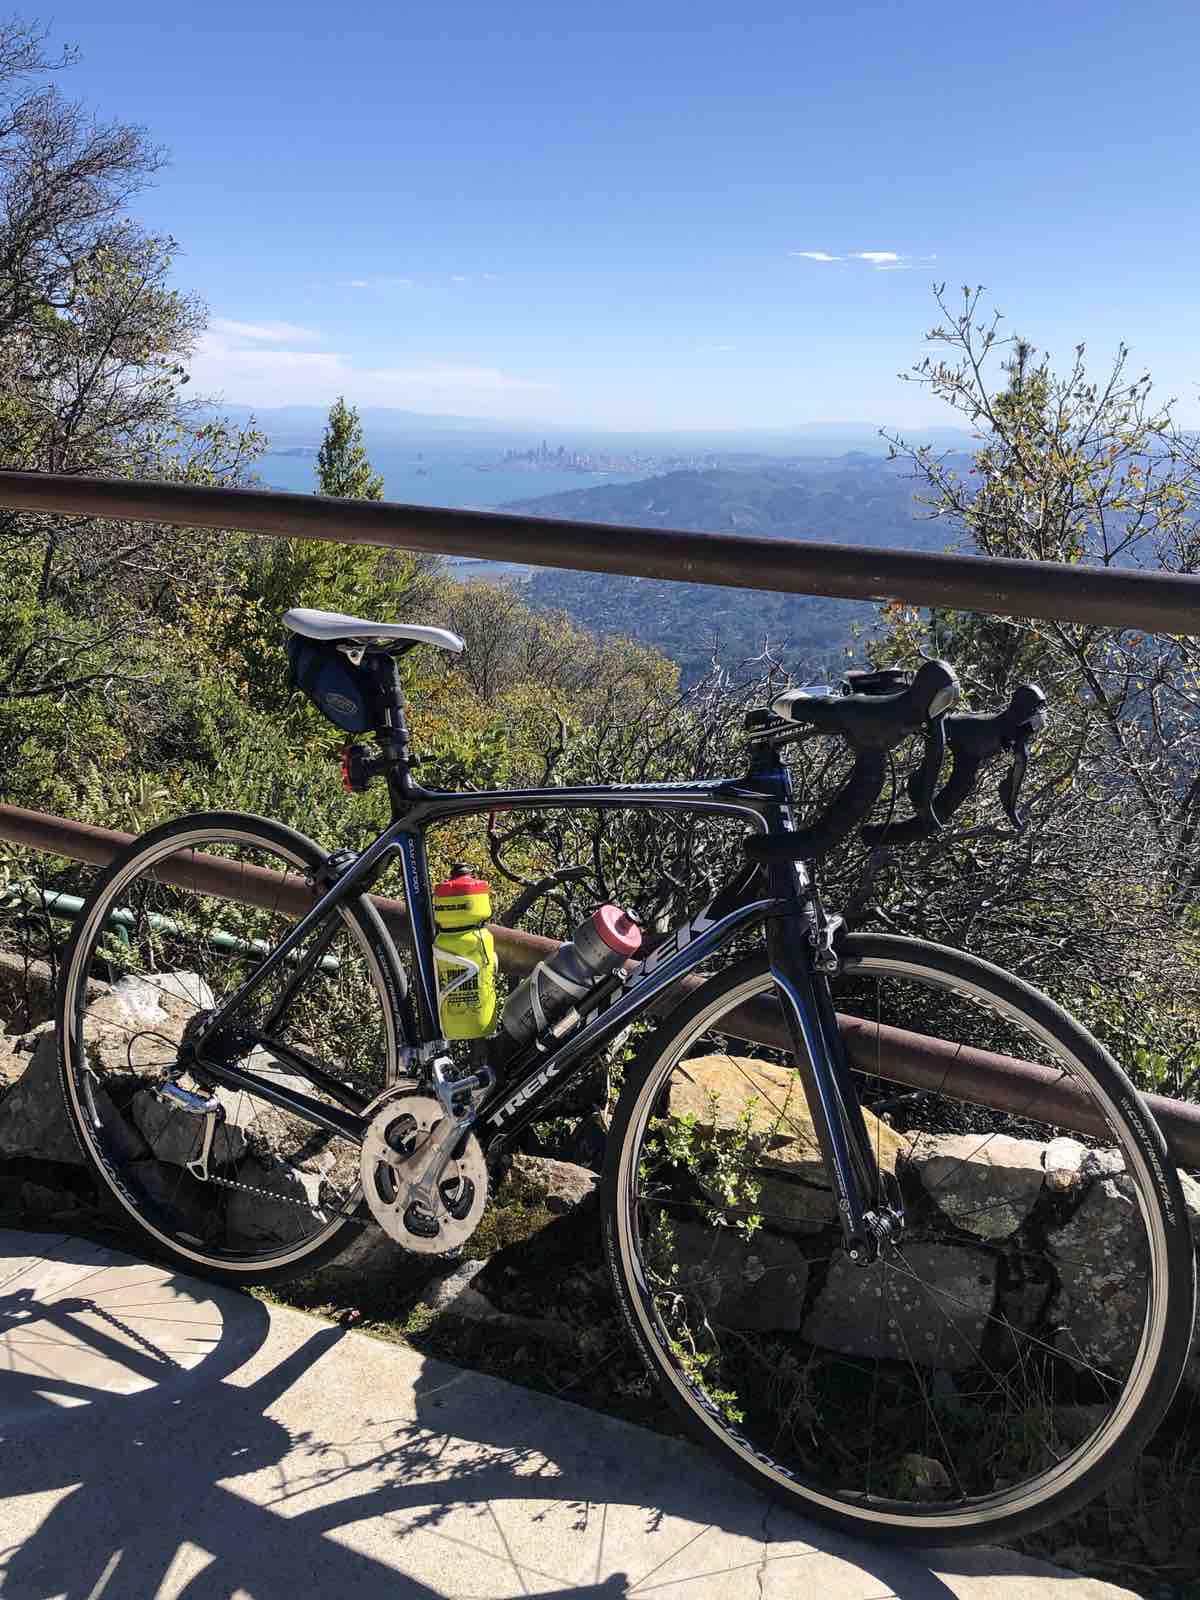 bikerumor pic of the day a trek road bike leans against a railing at the top of Mount Tamalpais in california. There are tall pine trees on the other side of the railing and views down the mountain towards the skyline of san francisco. it is a clear sunny day with few clouds in the sky.